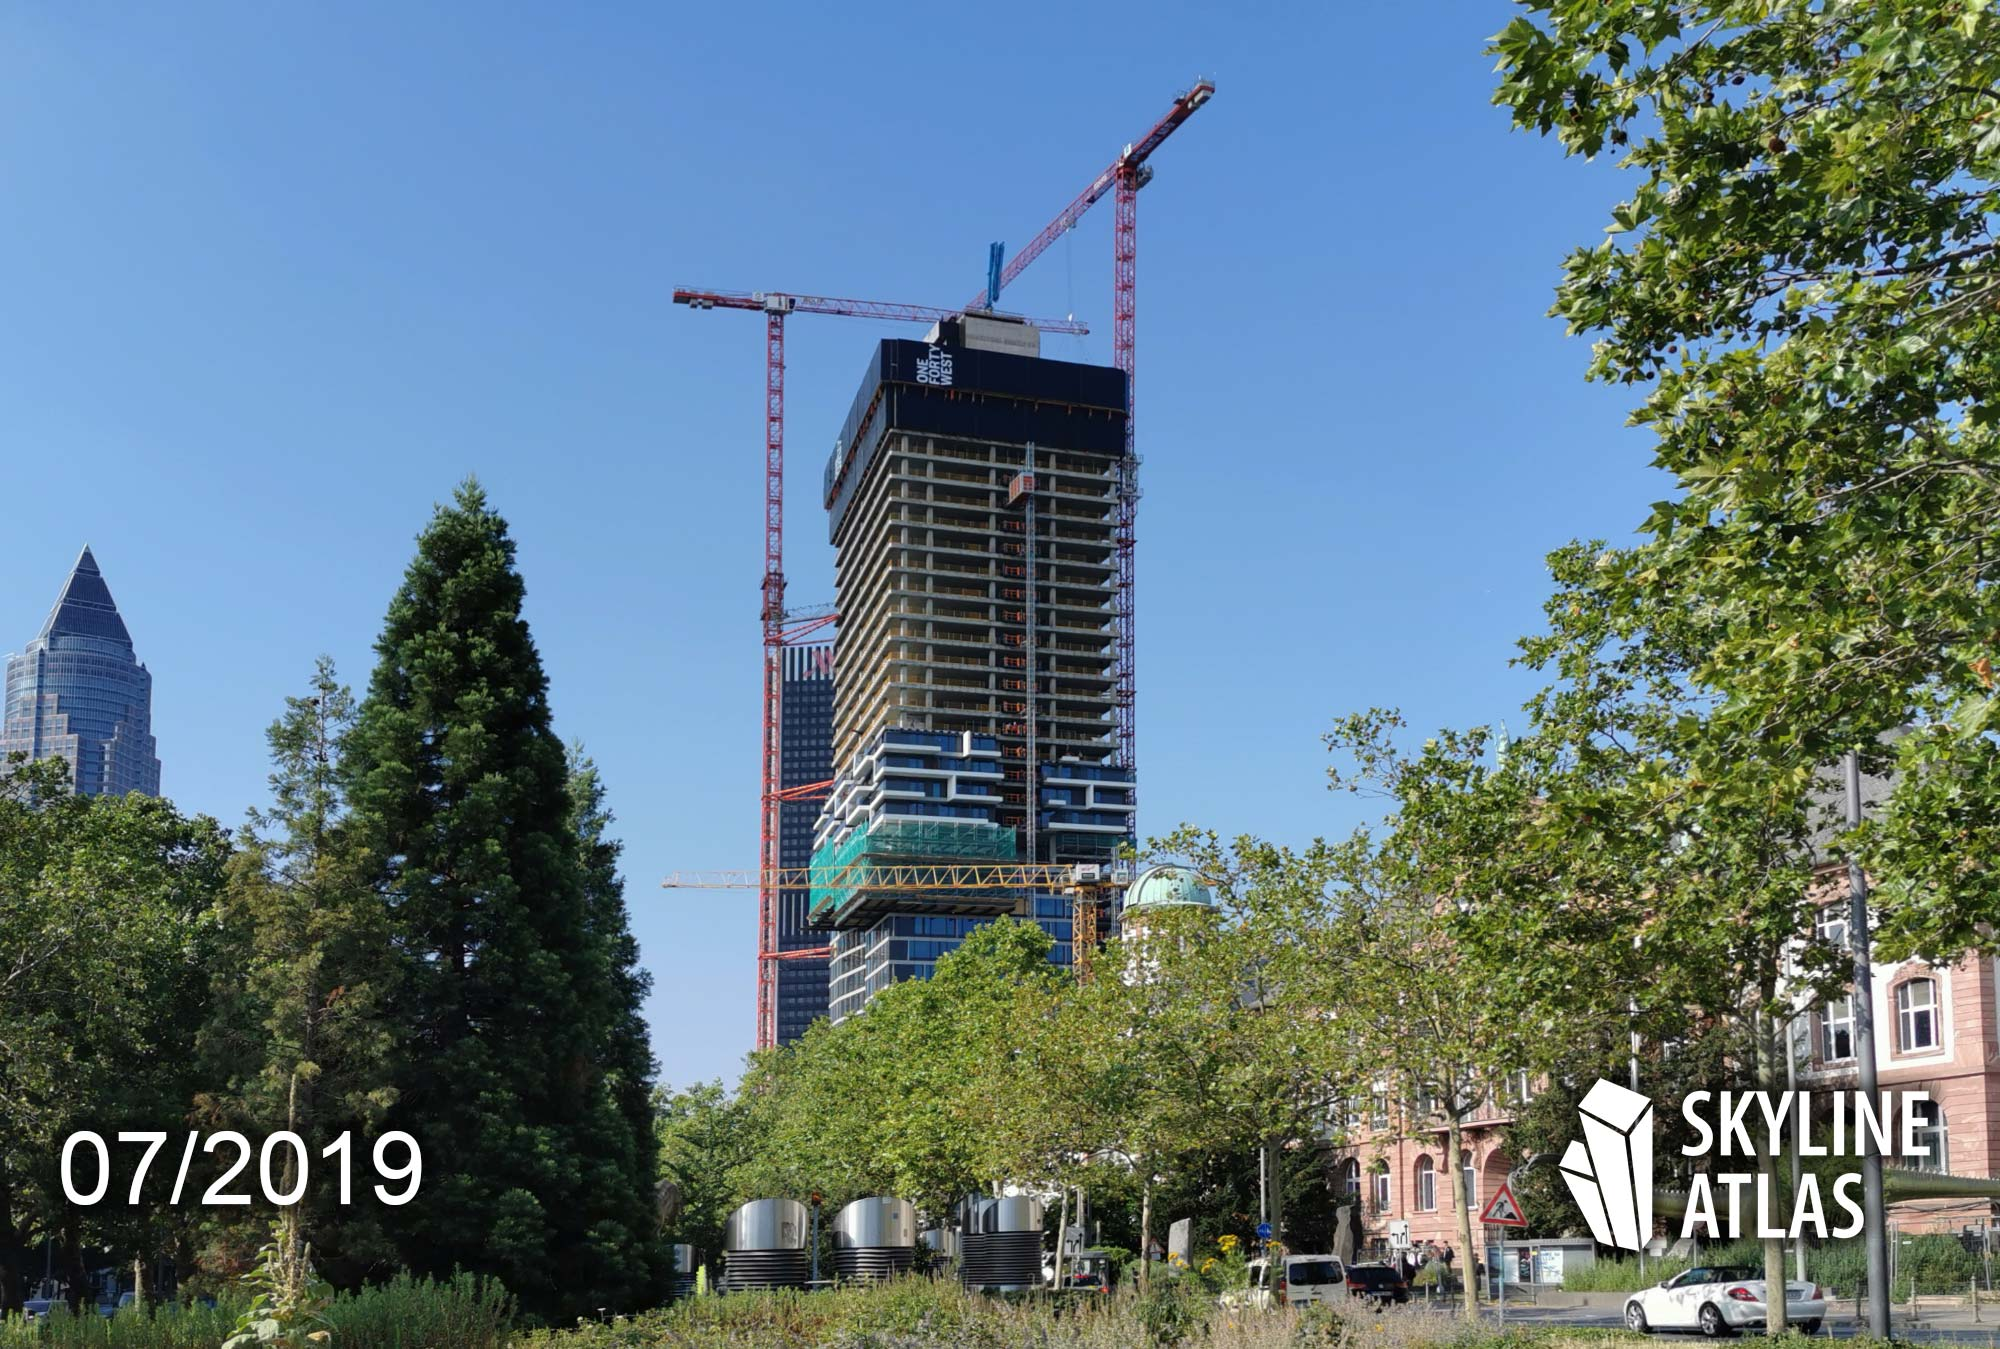 140 West - ONE FORTY WEST - skyscraper in Frankfurt - mixed use - under construction in July 2019